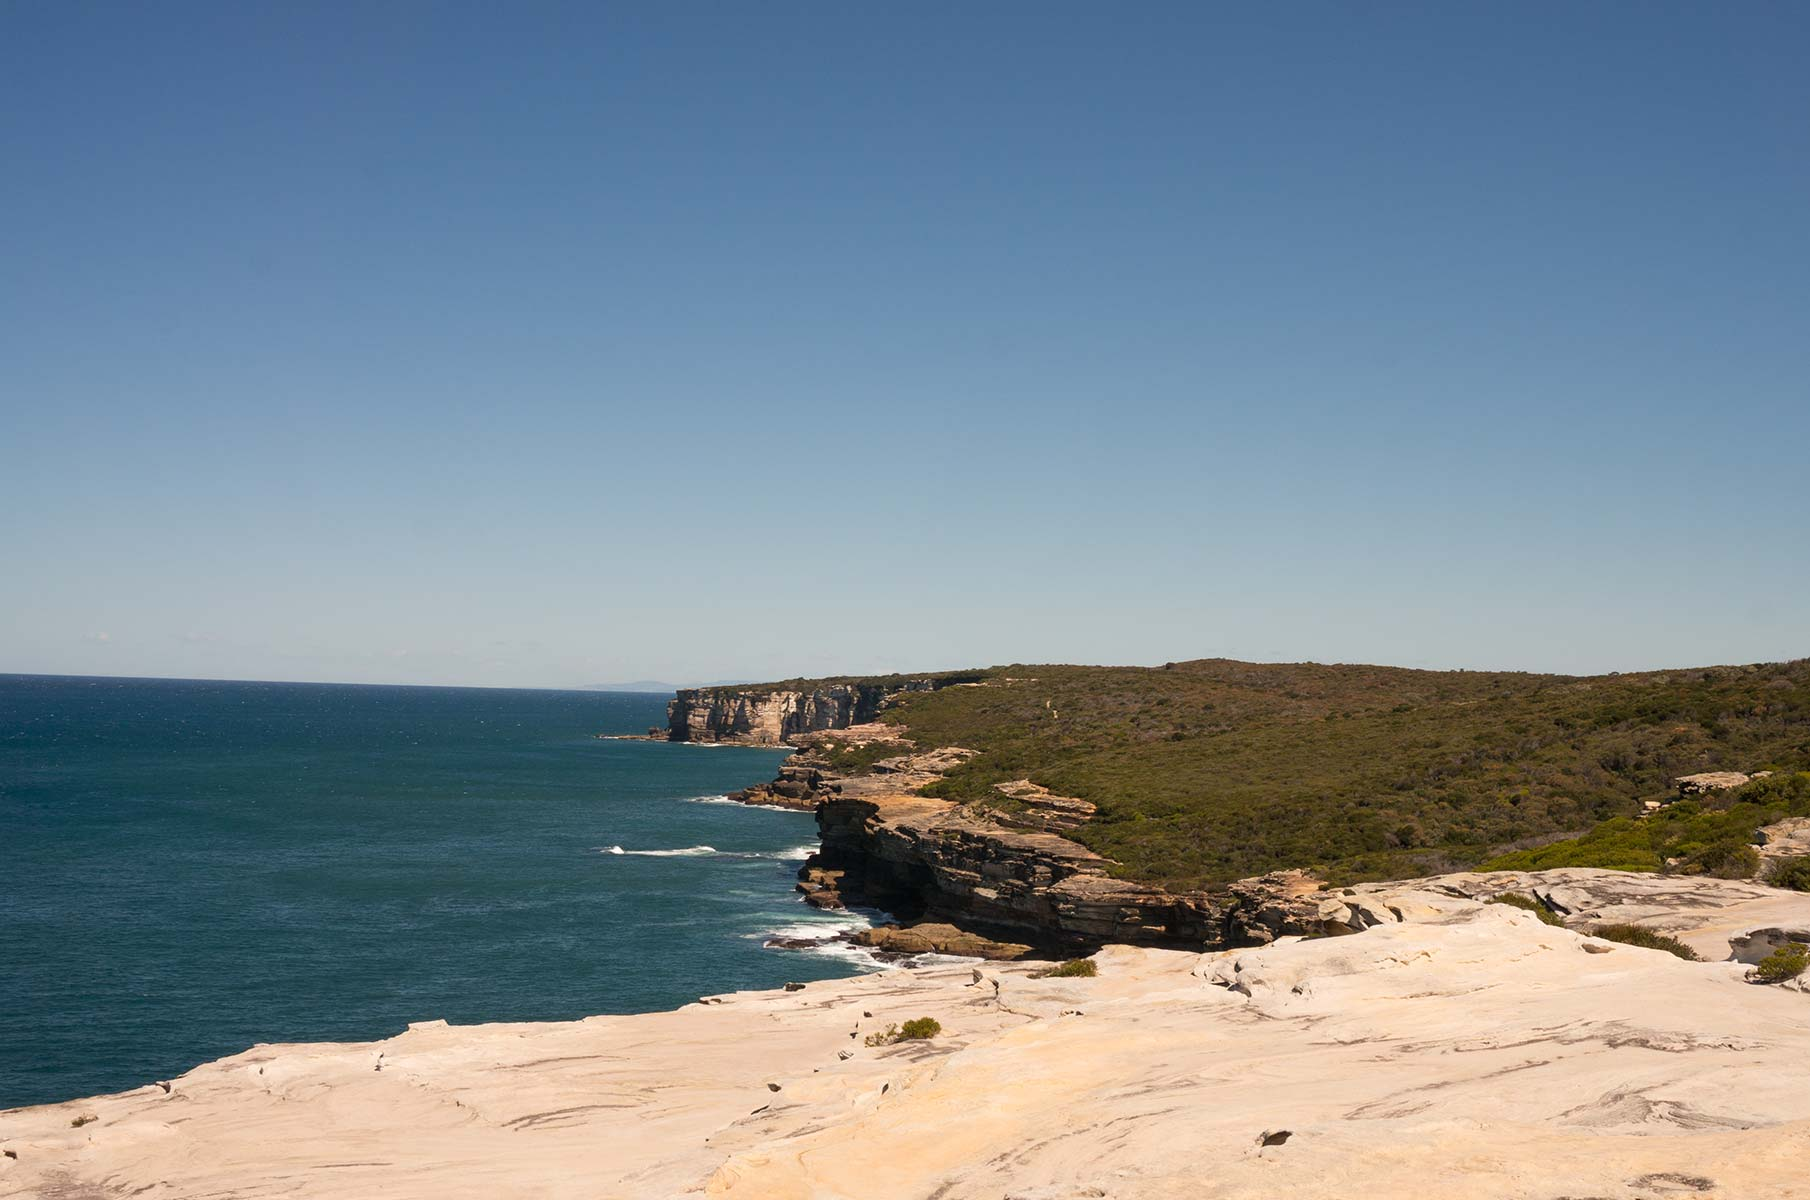 Balconies im Royal National Park, Australien